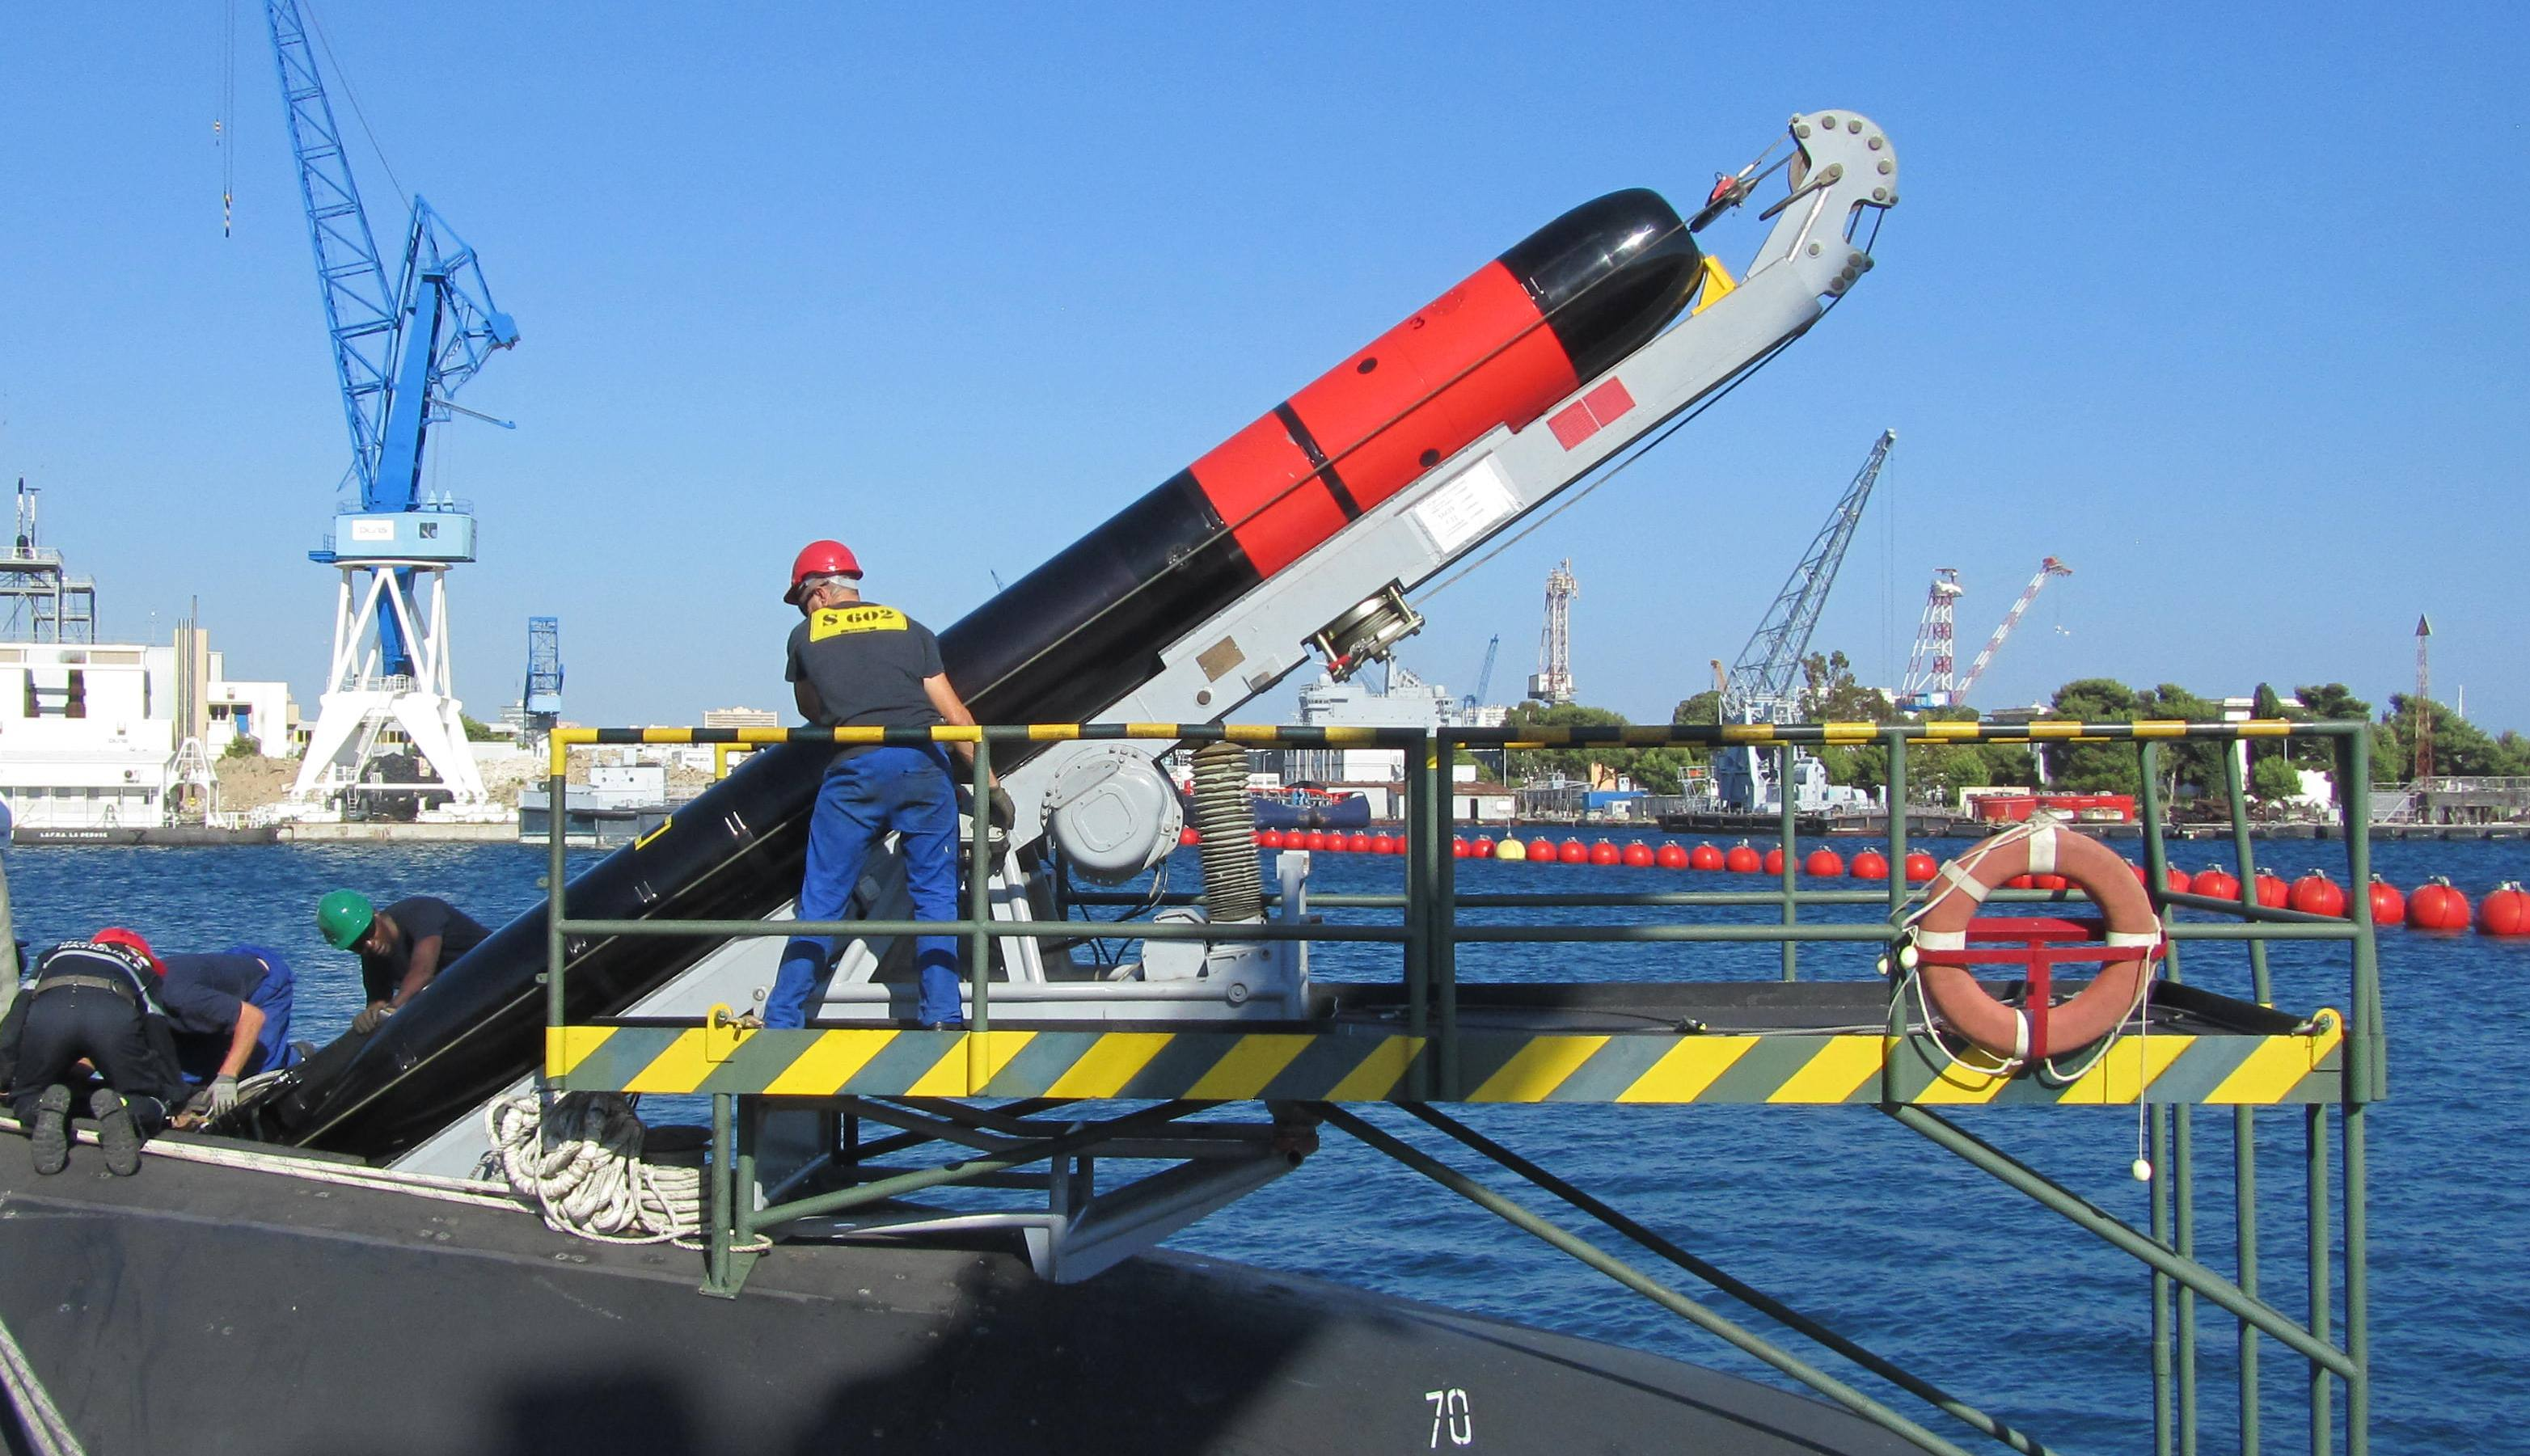 This new 1.2-ton torpedo can hit a target 31 miles away